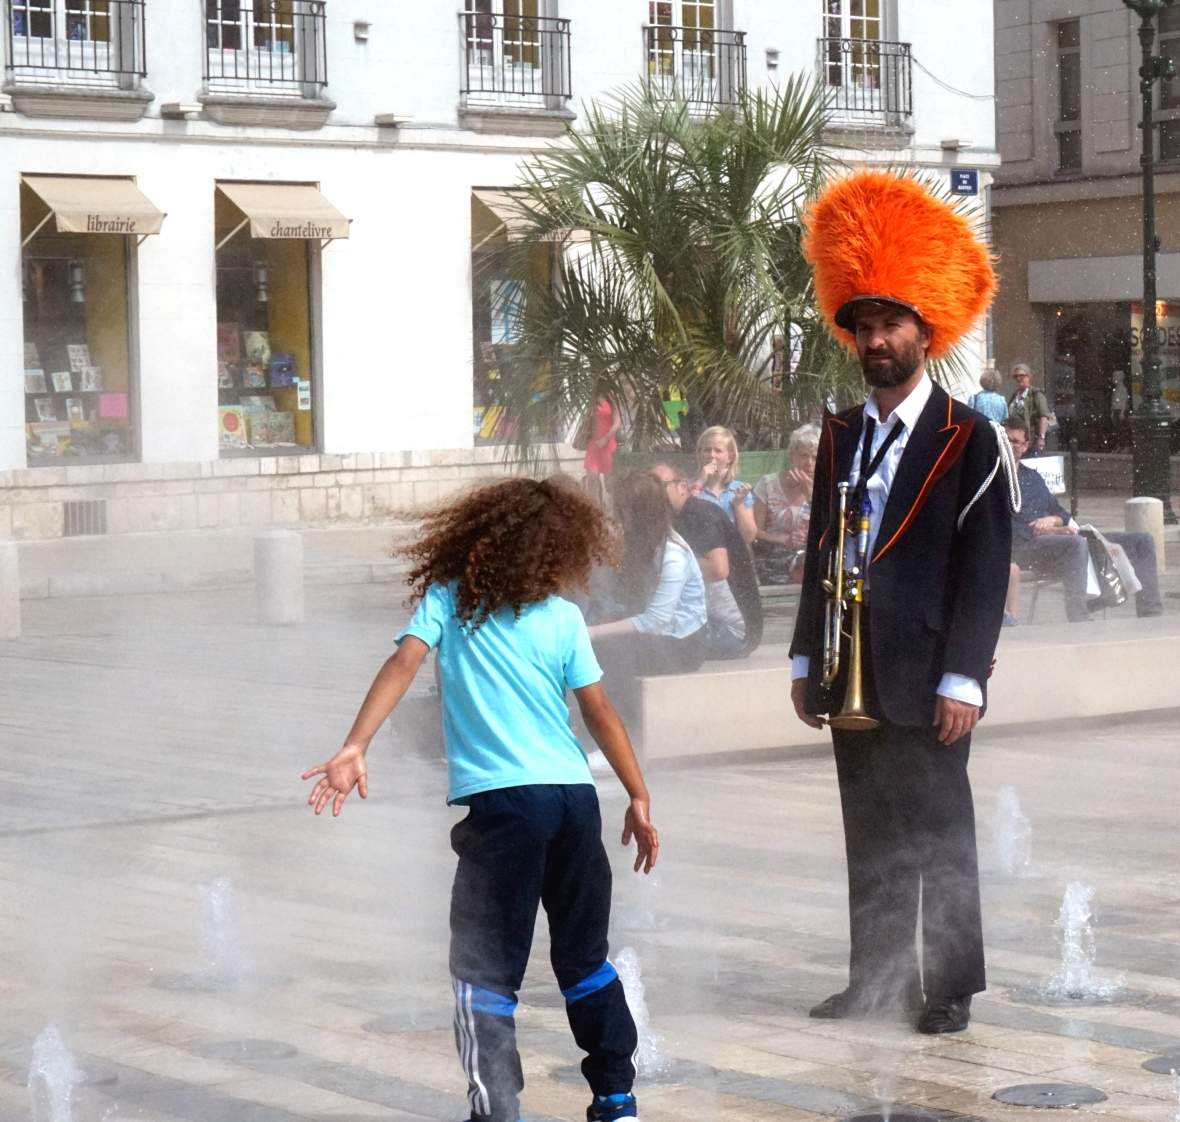 ma petite tribu; Dancing in the street 3